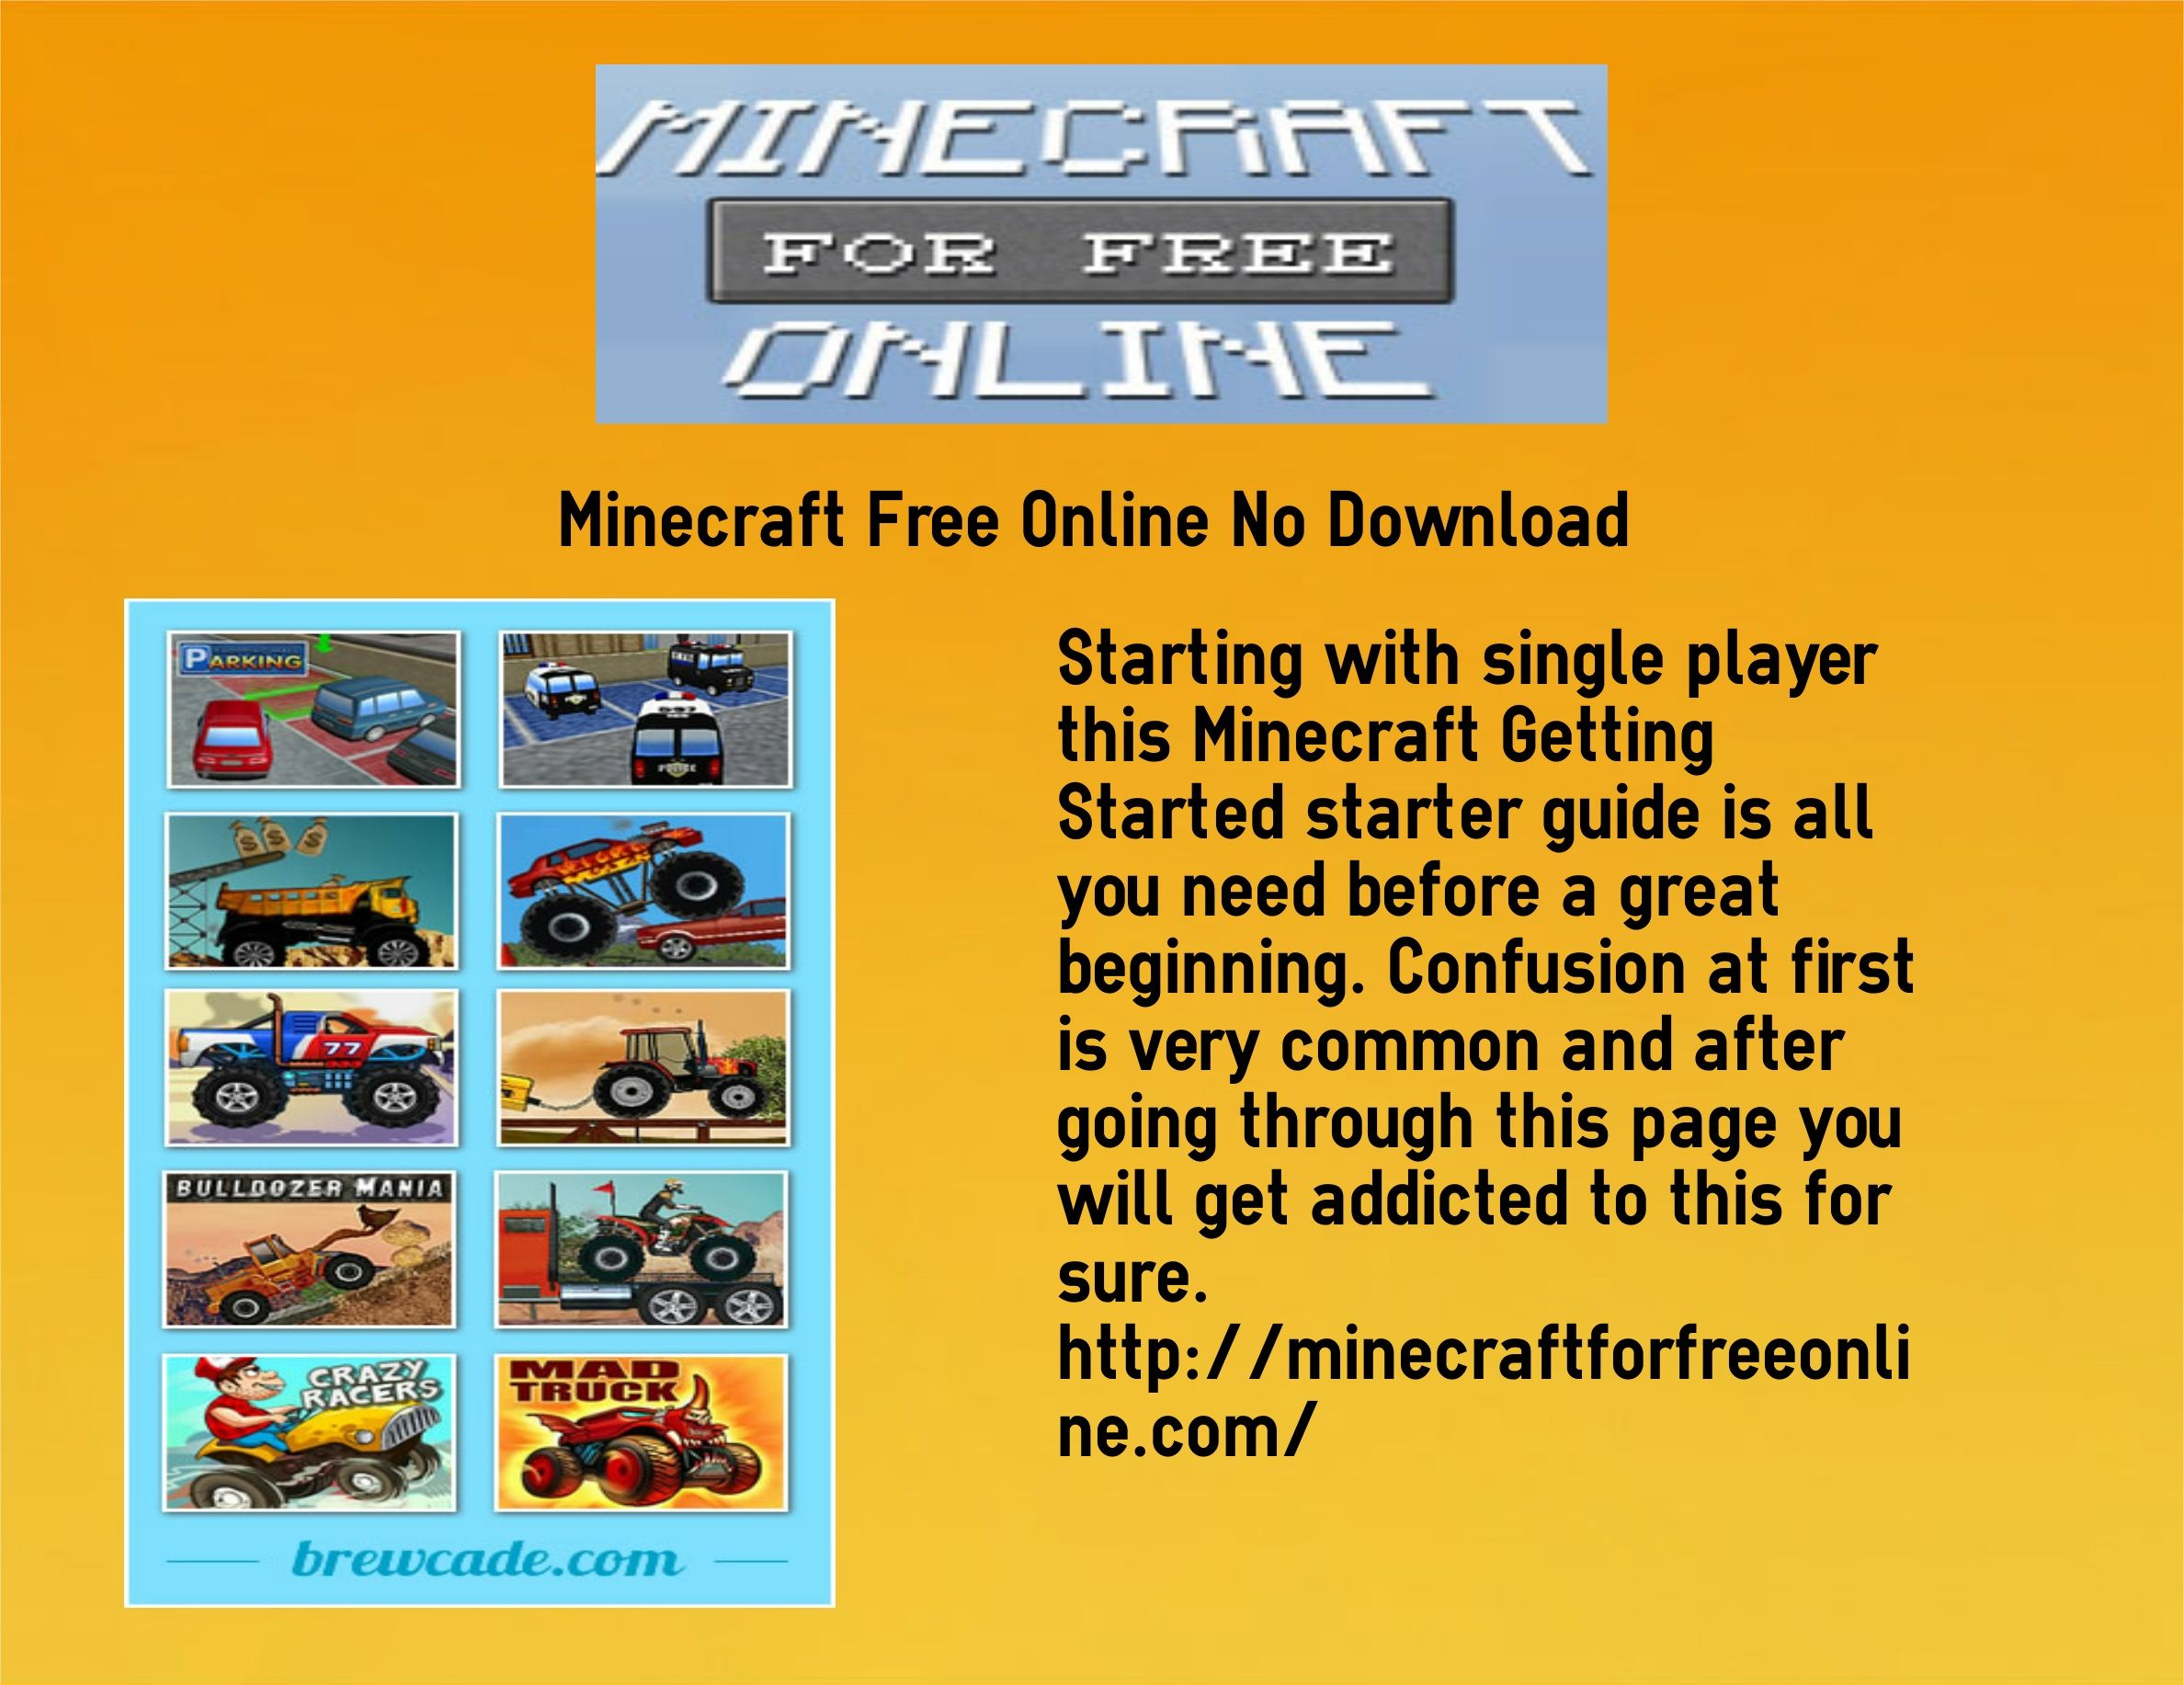 If you want to play minecraft game online for free with no